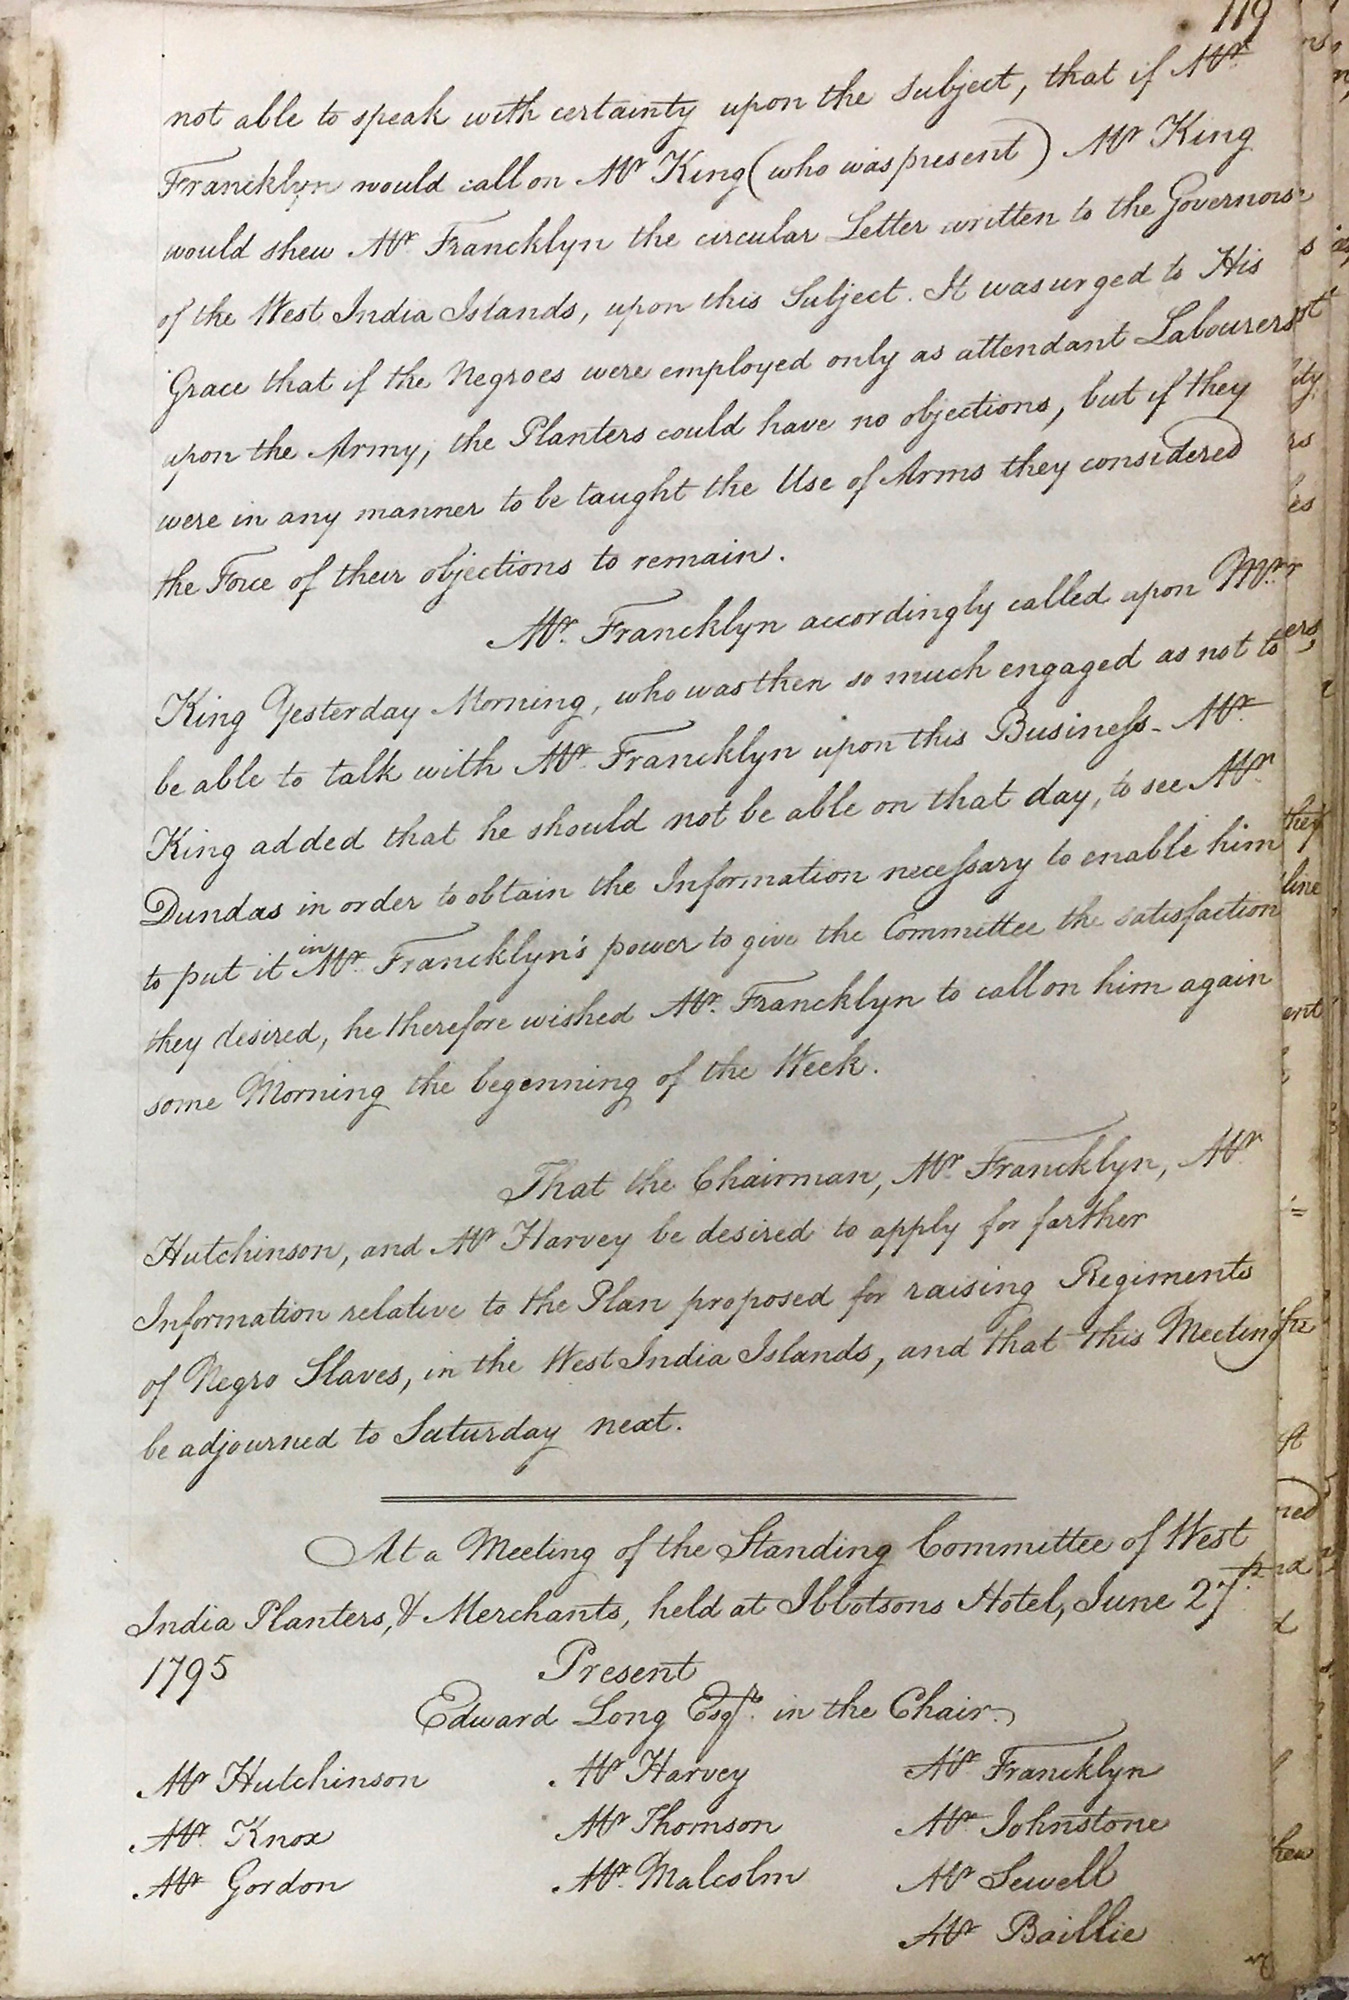 West India Committee, Standing Committee Minutes 27th June 1795